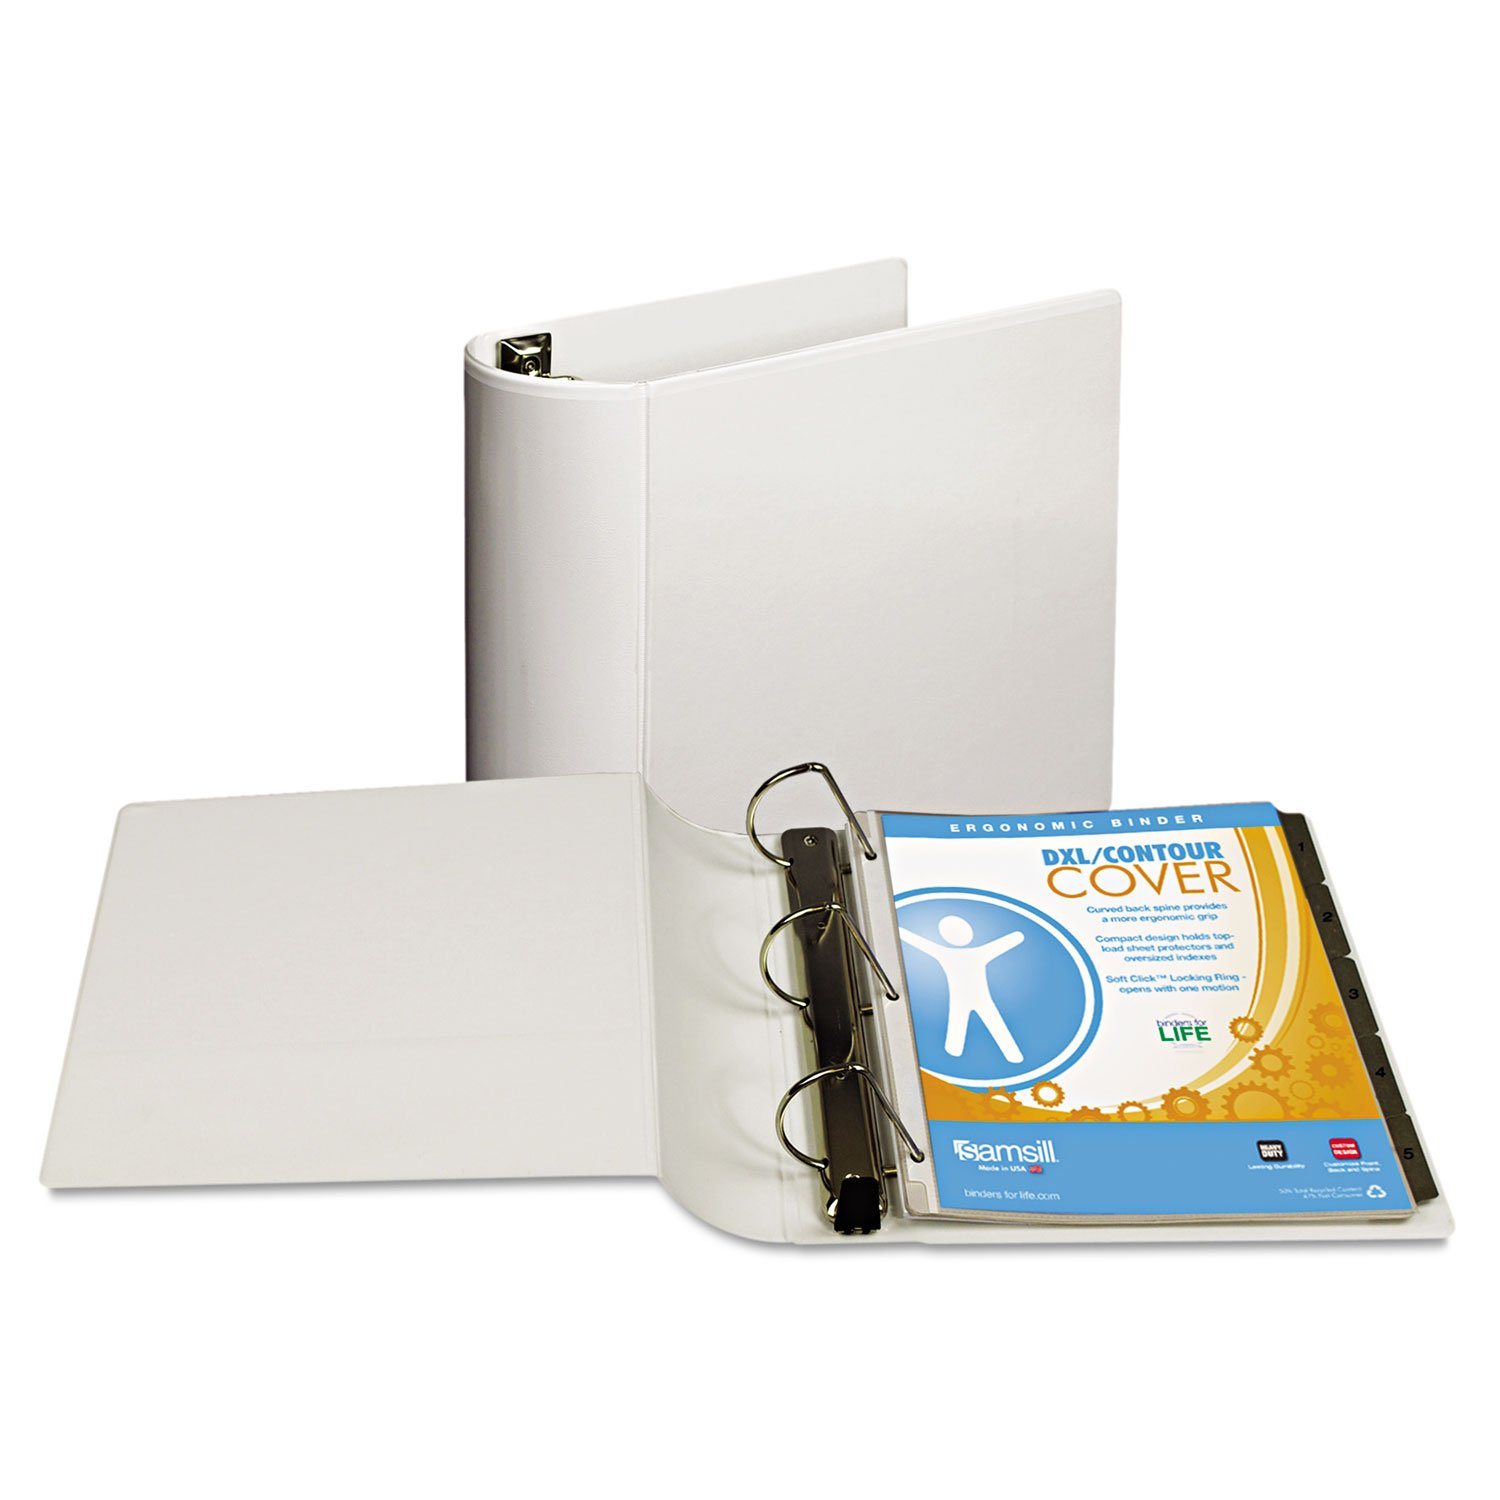 Samsill 17797 Top Performance DXL Angle-D View Binder 4'' Capacity White